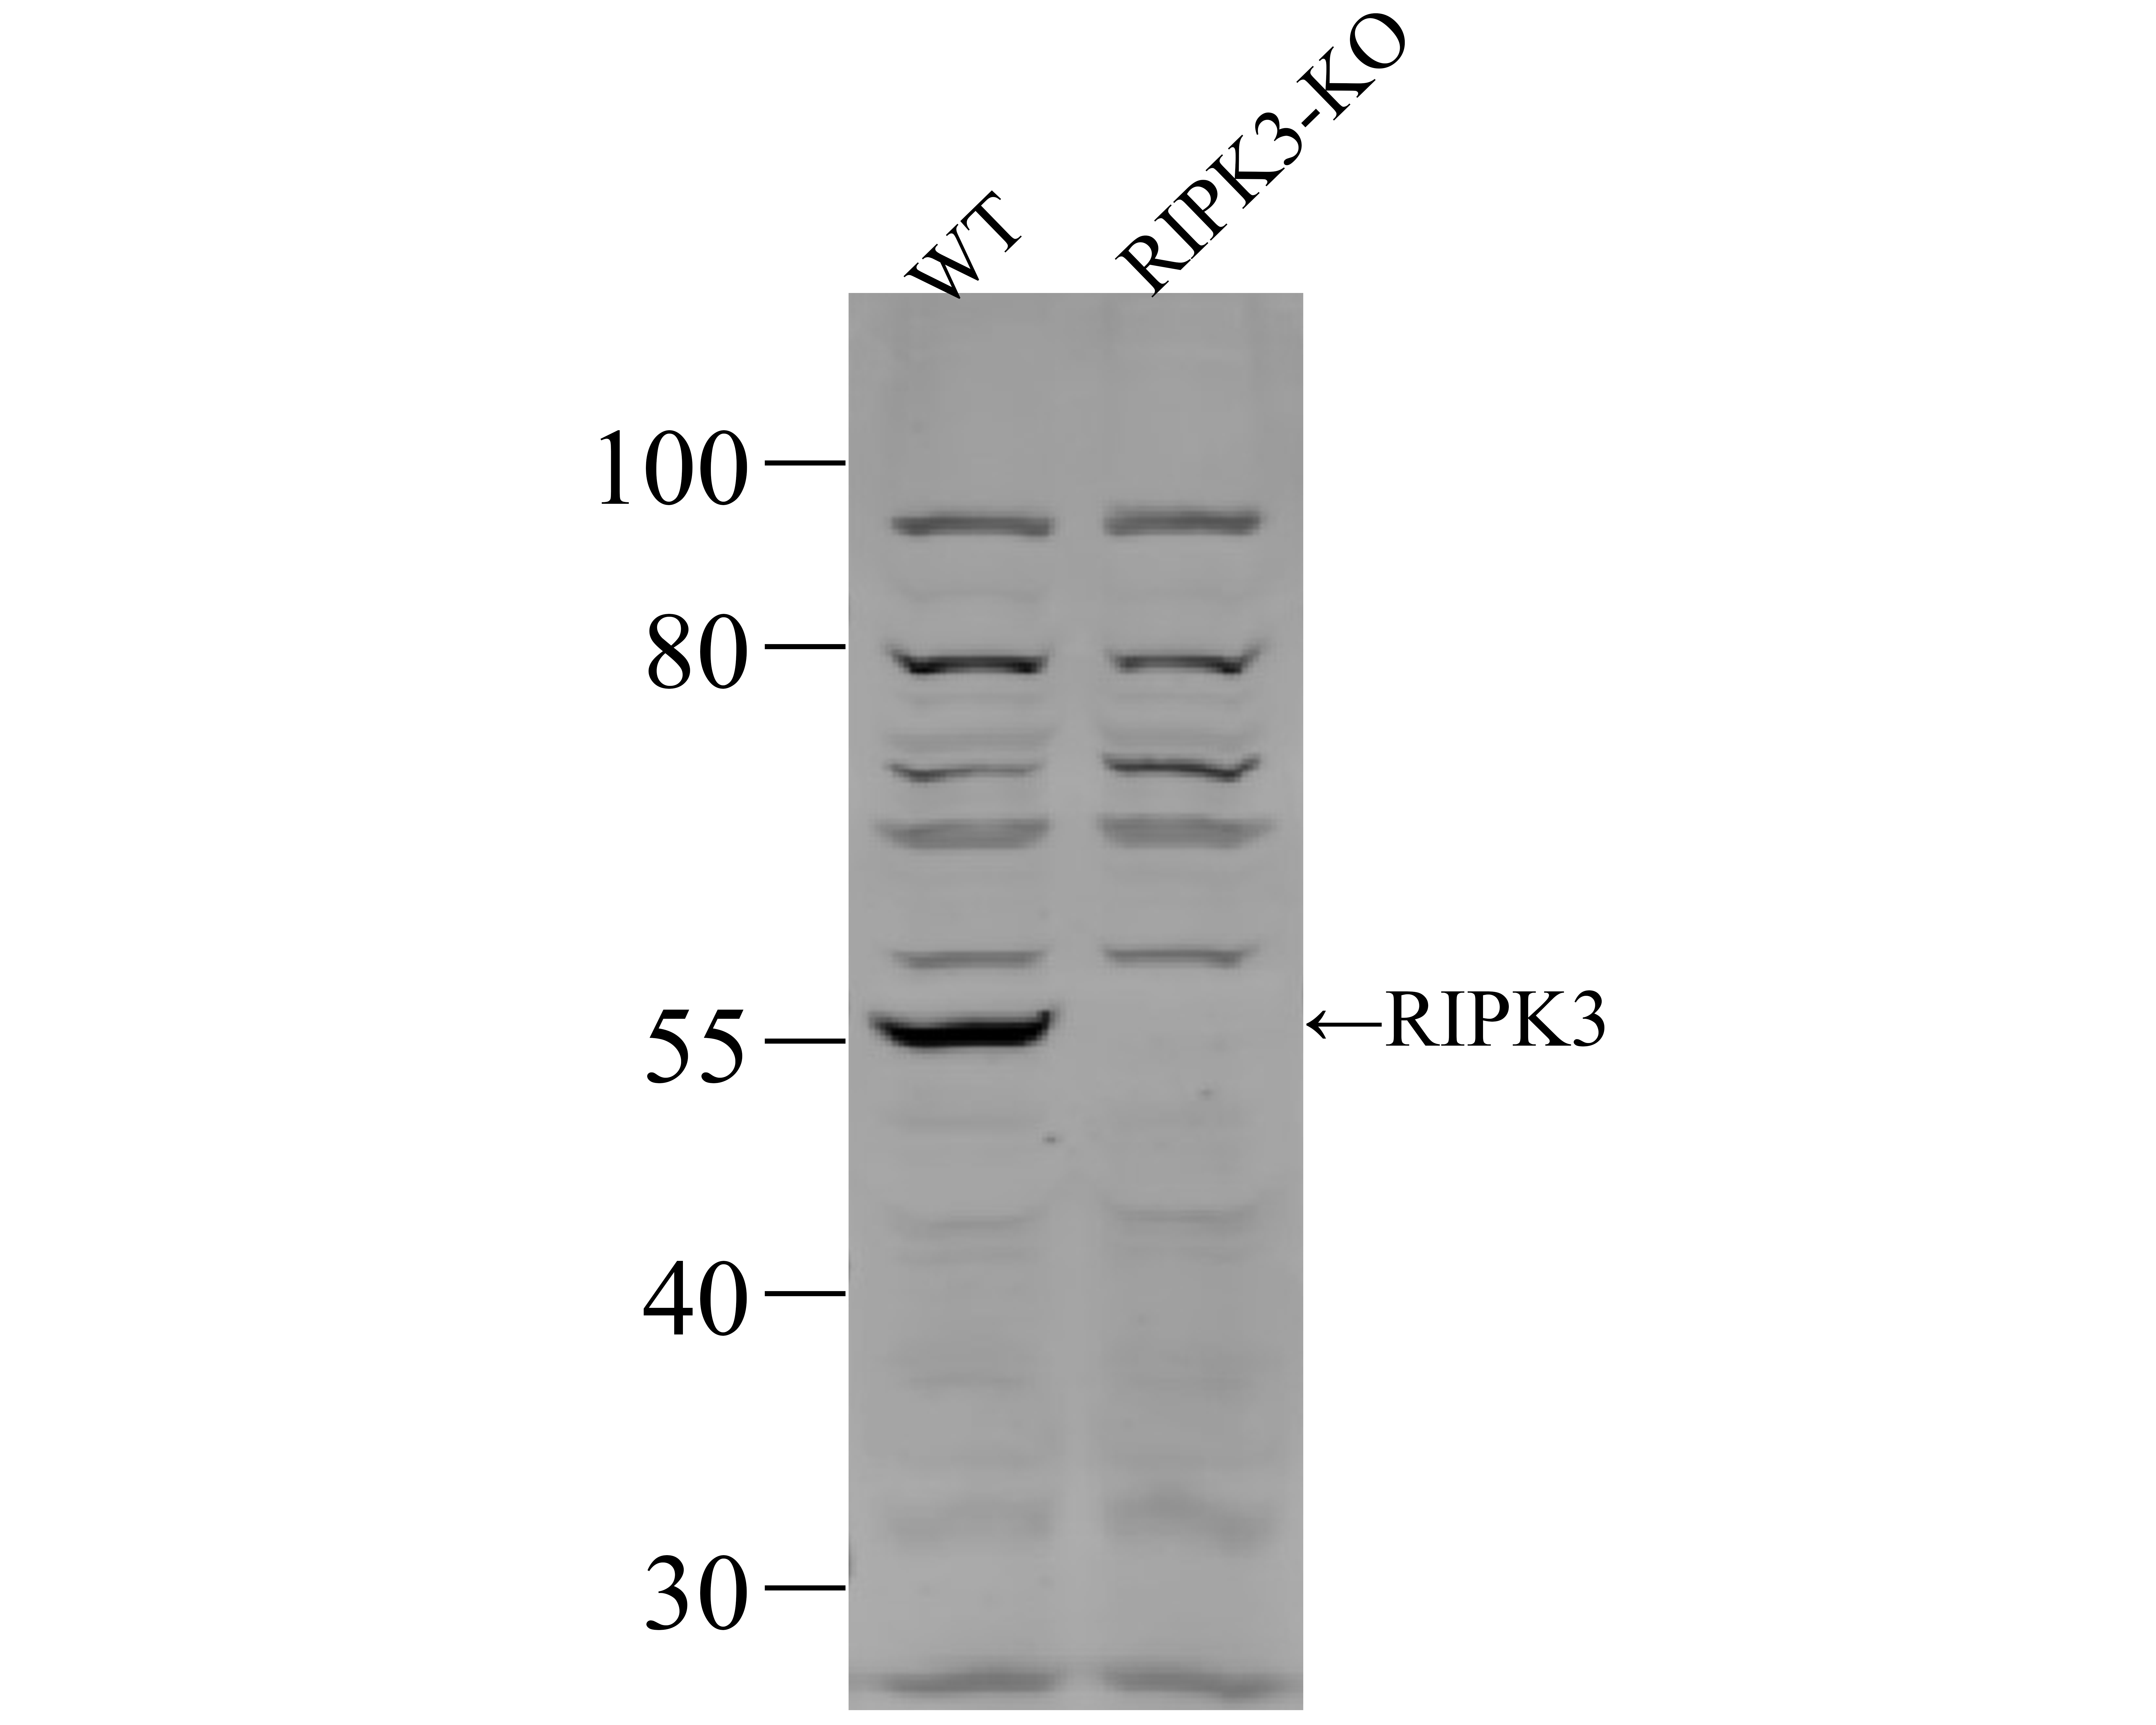 Western blot analysis of RIP3 on MEF cell lysates. Proteins were transferred to a PVDF membrane and blocked with 5% BSA in PBS for 1 hour at room temperature. The primary antibody was used at a 1:500 dilution in 5% BSA at room temperature for 2 hours. Goat Anti-Rabbit IgG - HRP Secondary Antibody (HA1001) at 1:5,000 dilution was used for 1 hour at room temperature.<br /> <br /> Lane 1: Wild-type MEF cell lysate<br /> Lane 2: RIPK3 knockout MEF cell lysate